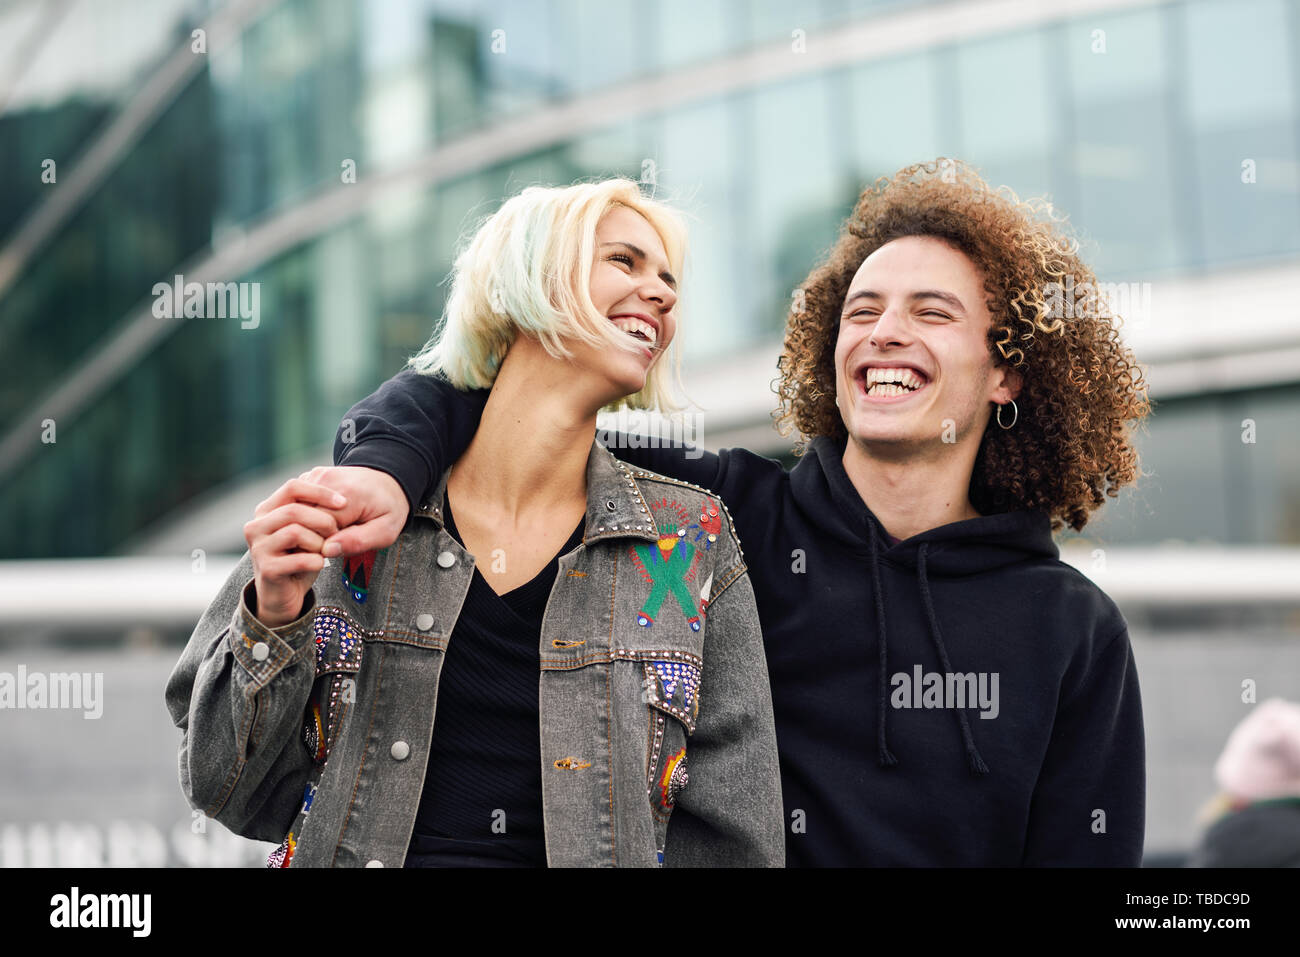 Happy young couple laughing in urban background - Stock Image